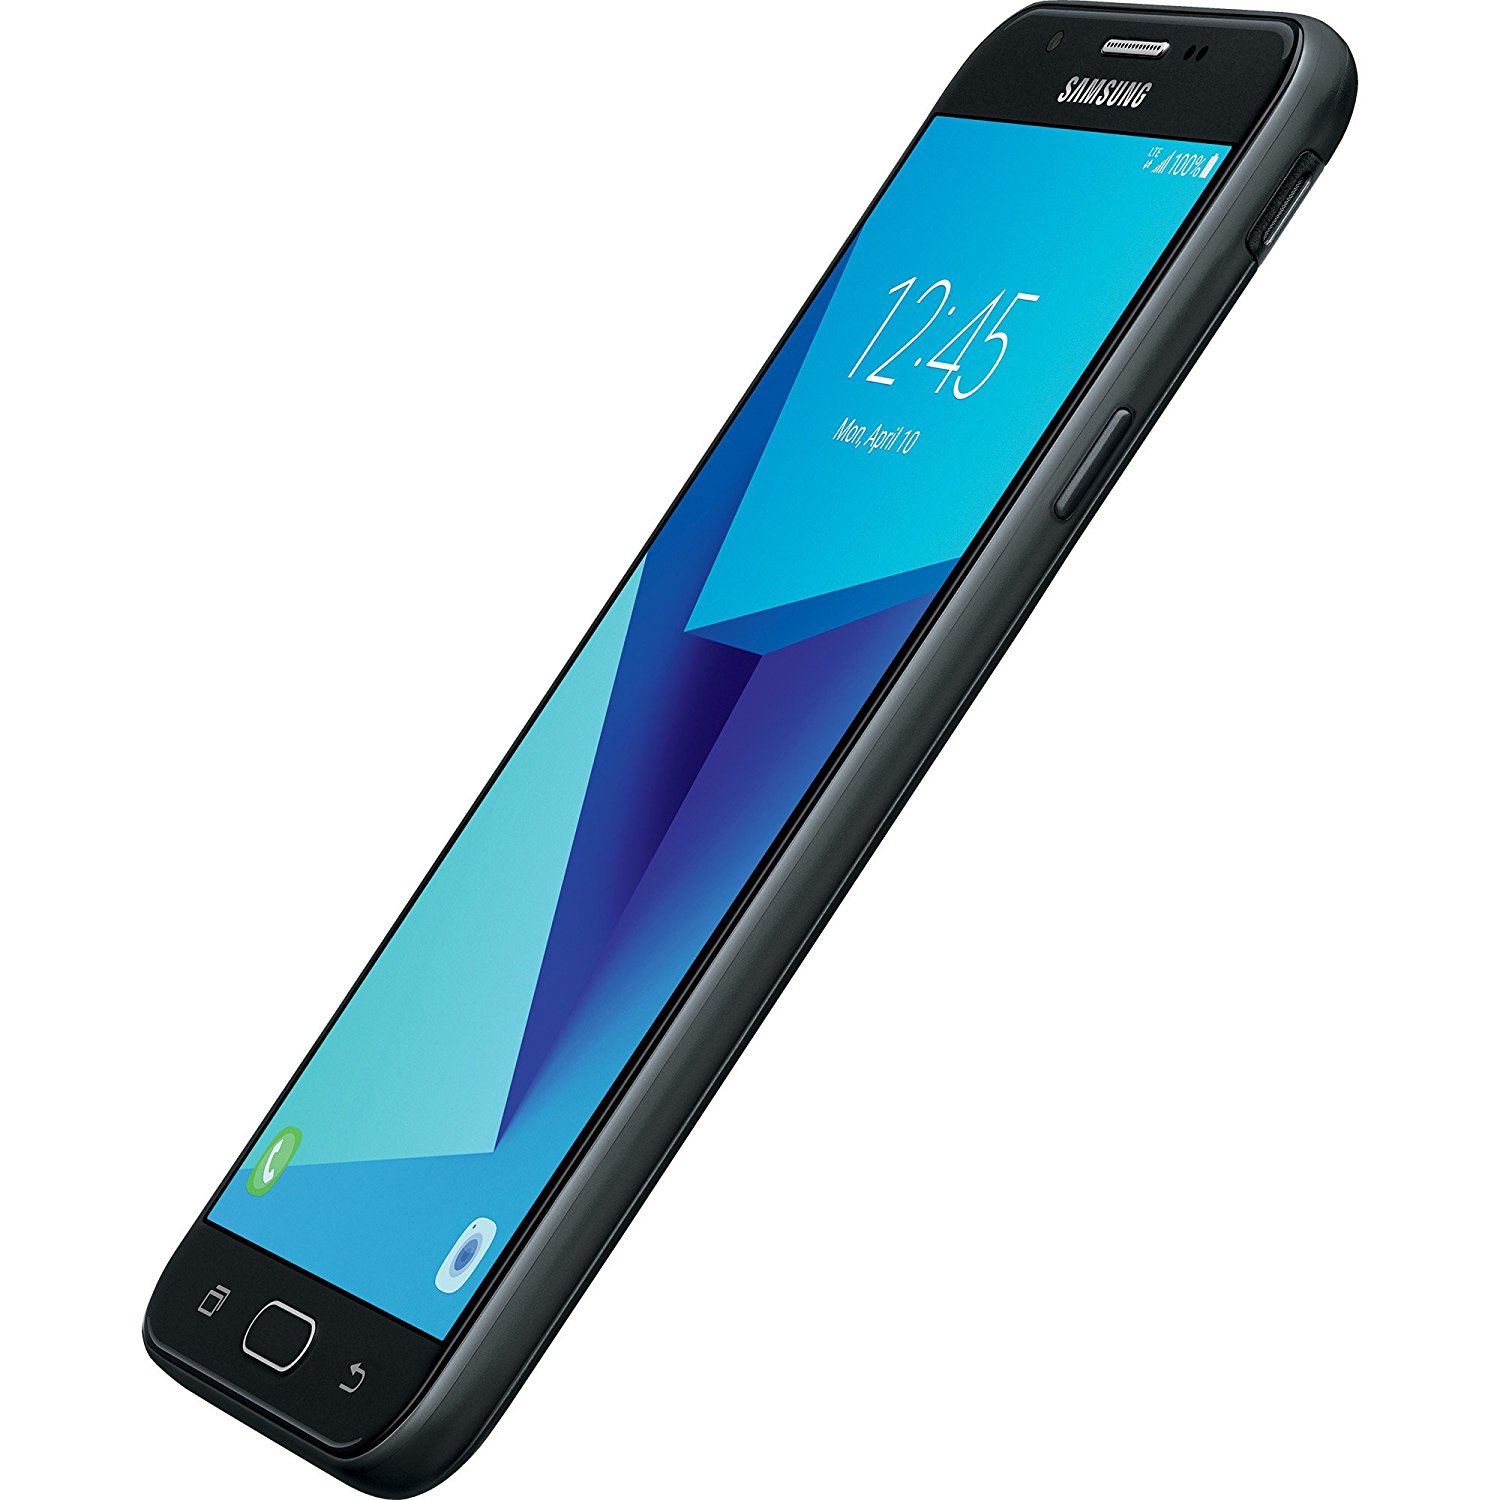 simple mobile samsung galaxy j7 sky pro 4g lte prepaid